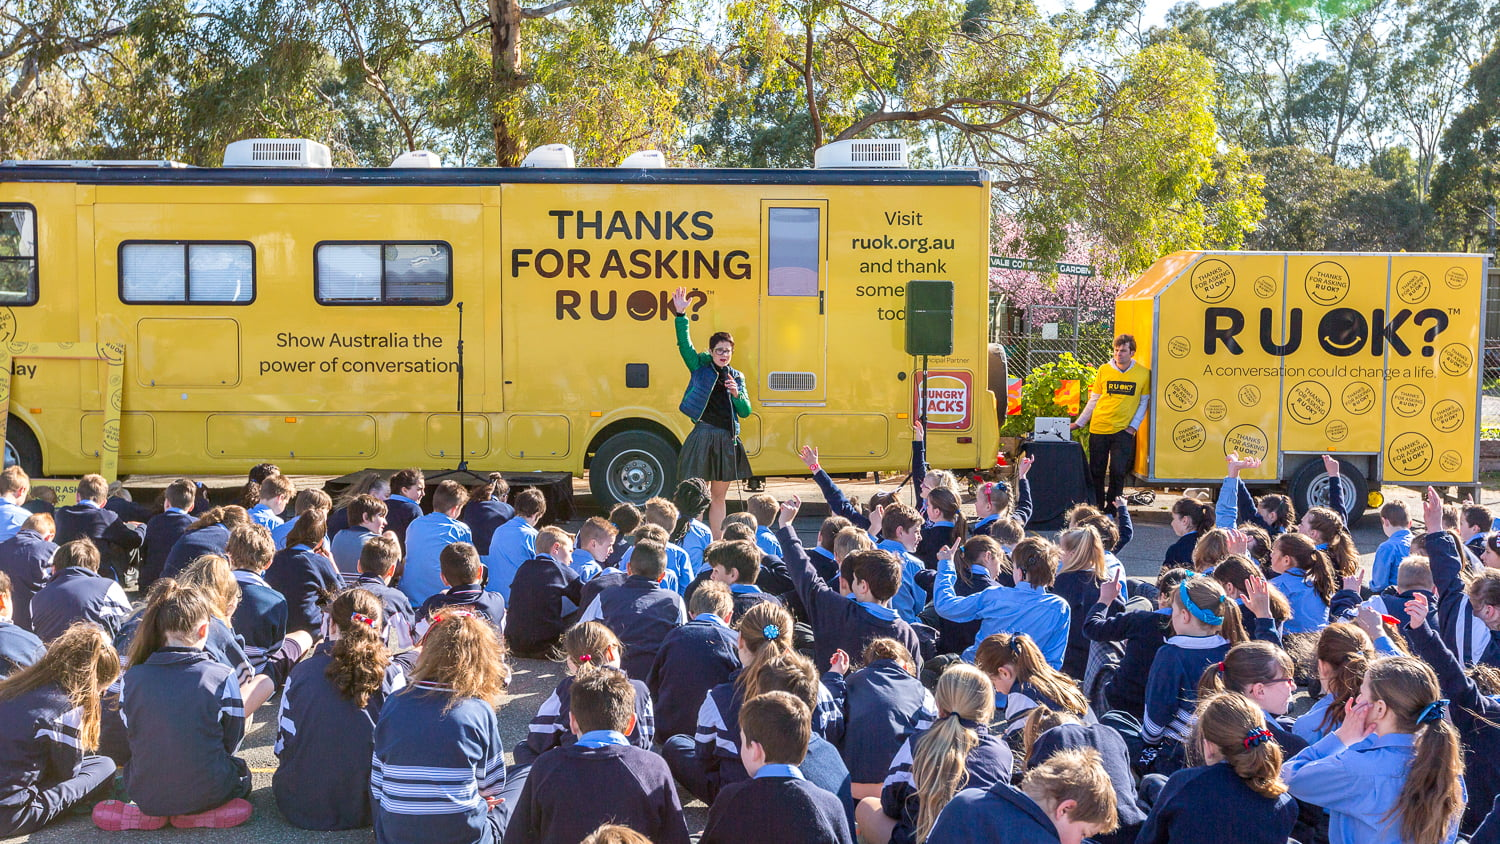 RUOK? Day helps prevent suicide - counsellor addresses kids by the yellow van